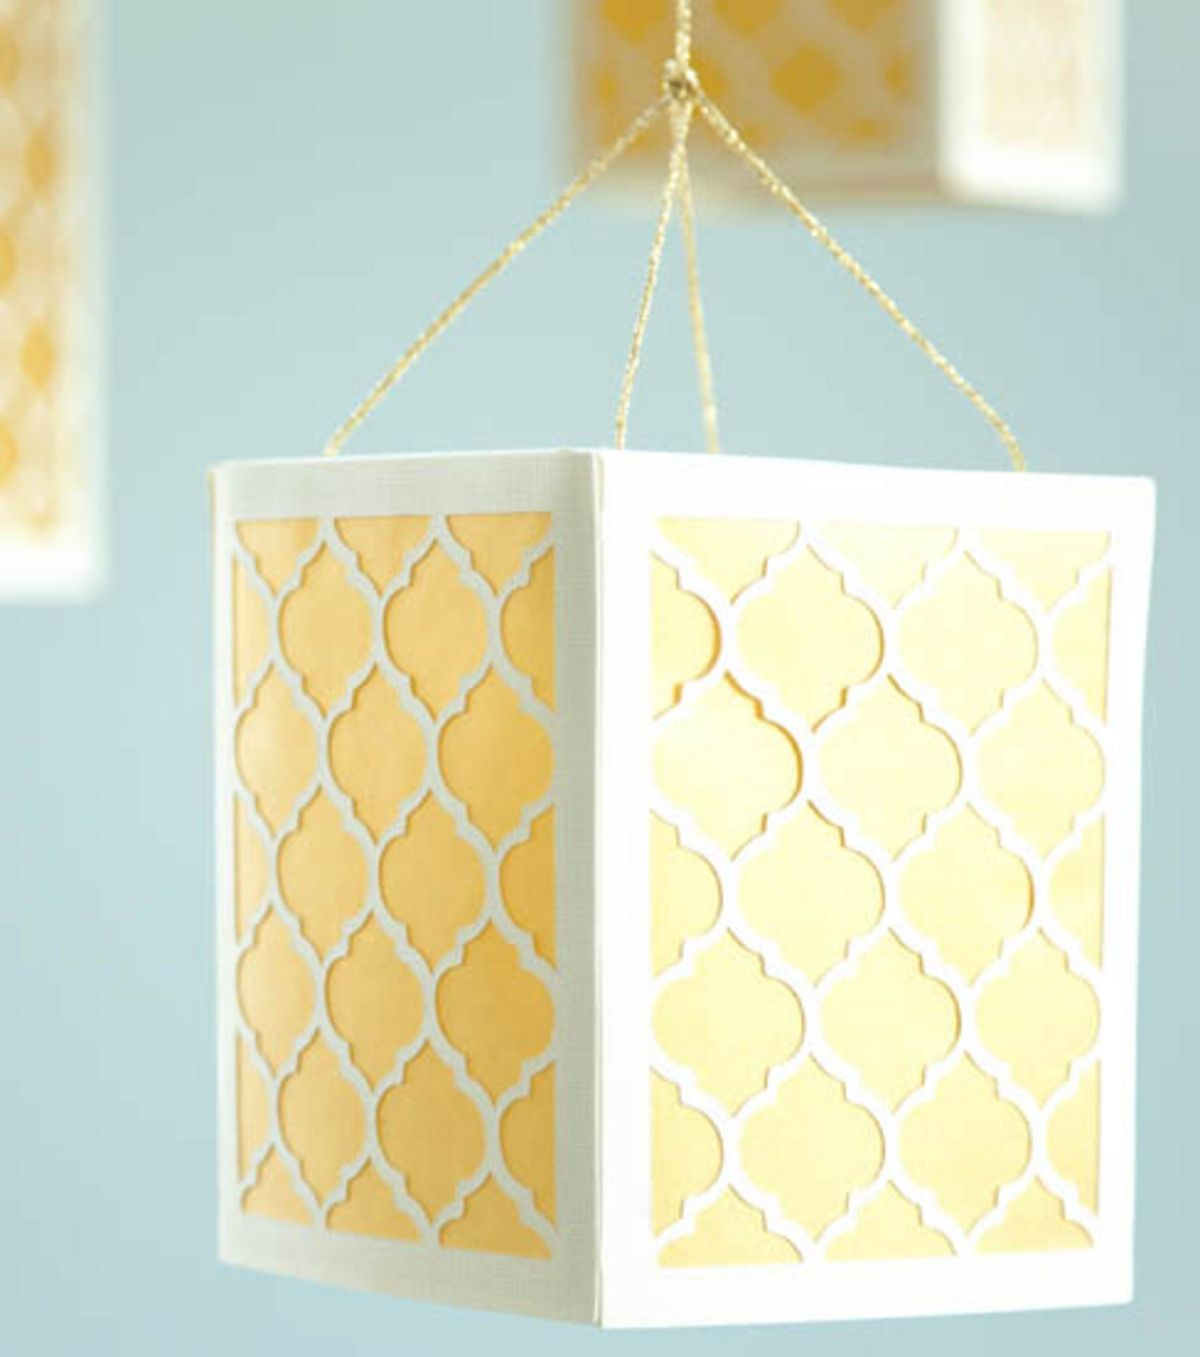 cricut lantern template  We LOVE lanterns! Make your own paper lantern with your ...